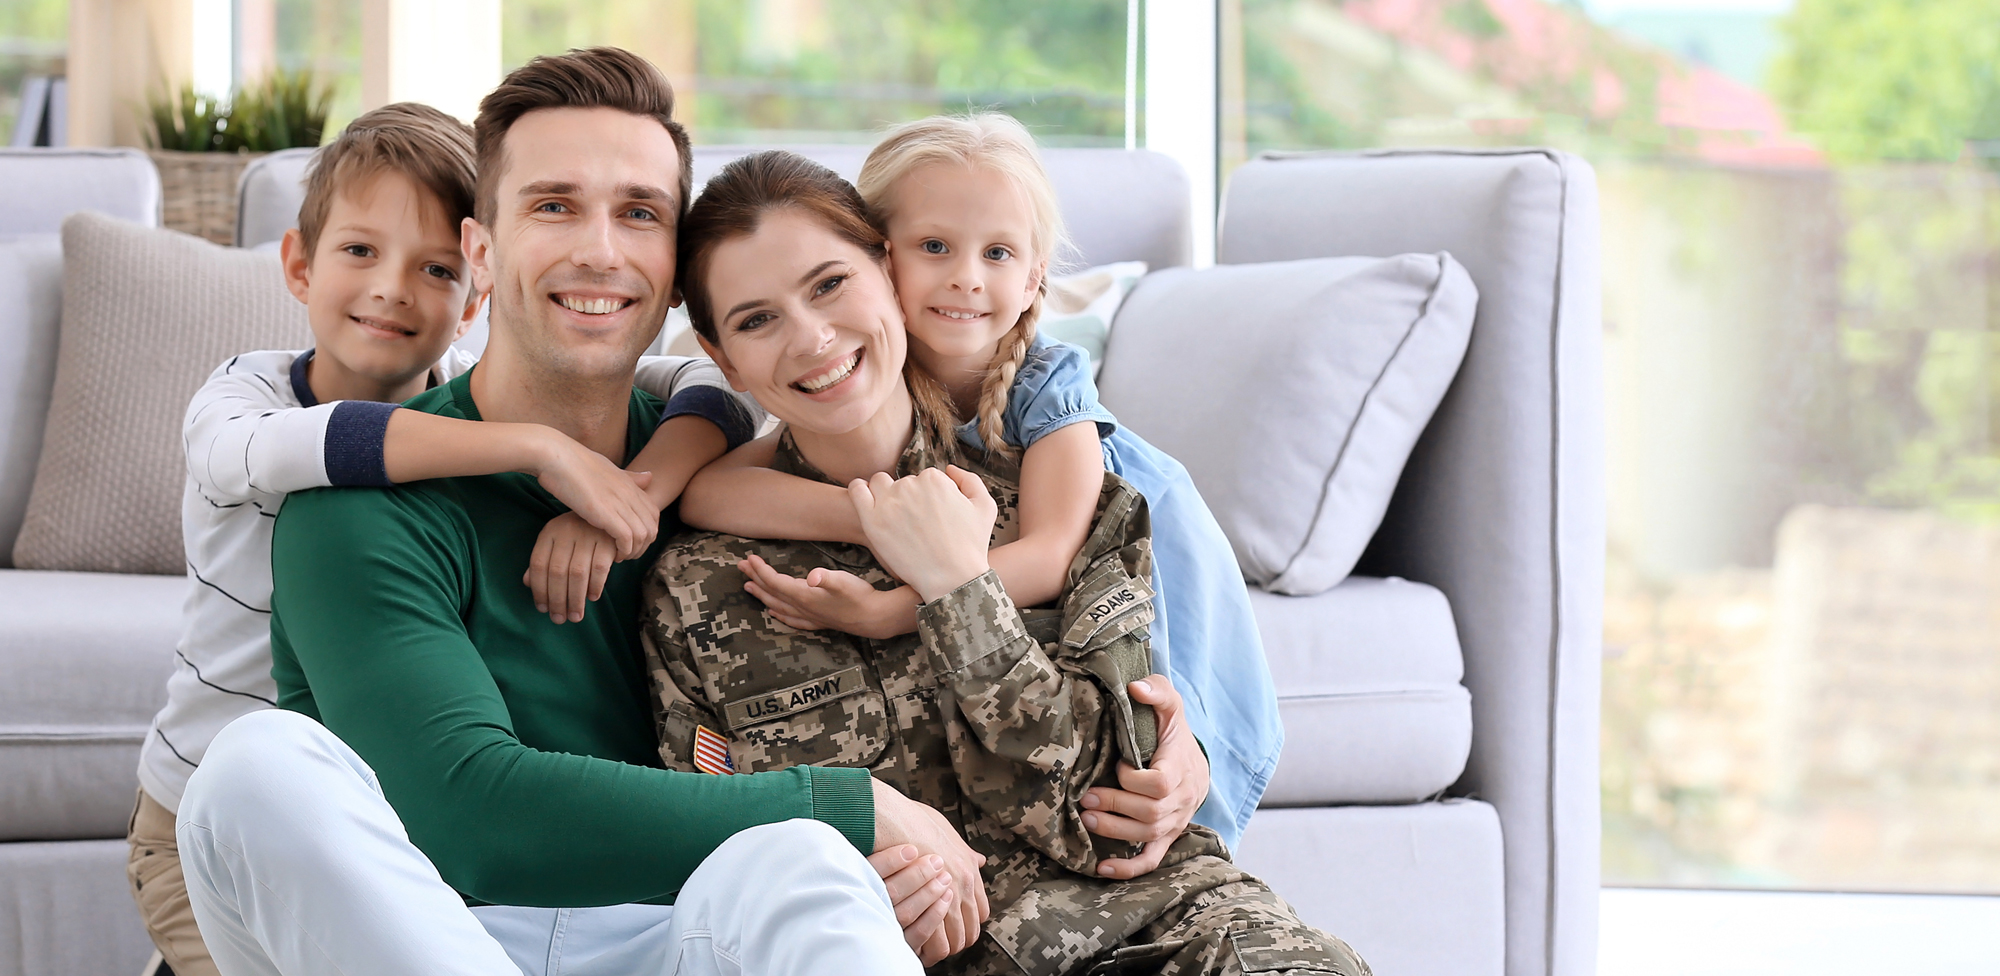 young parents with two kids sitting in front of couch smiling